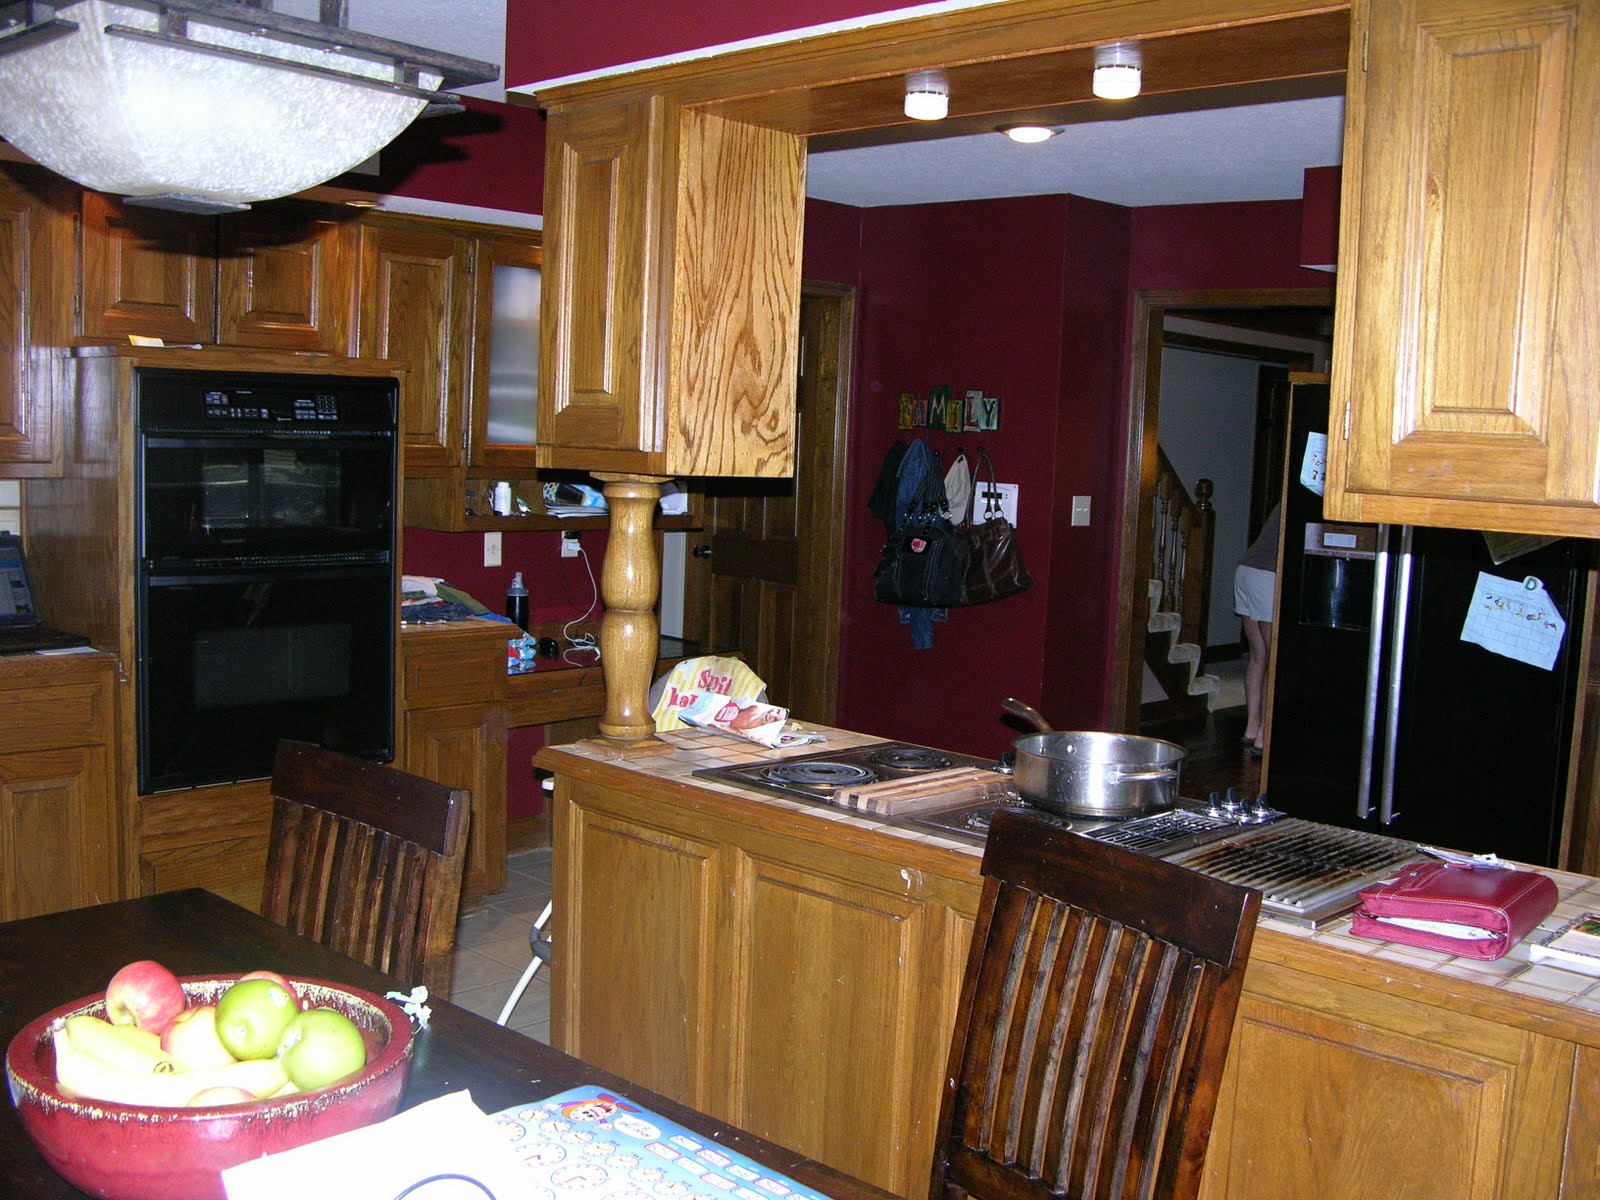 wine cabiout would open up the kitchen into the family room space